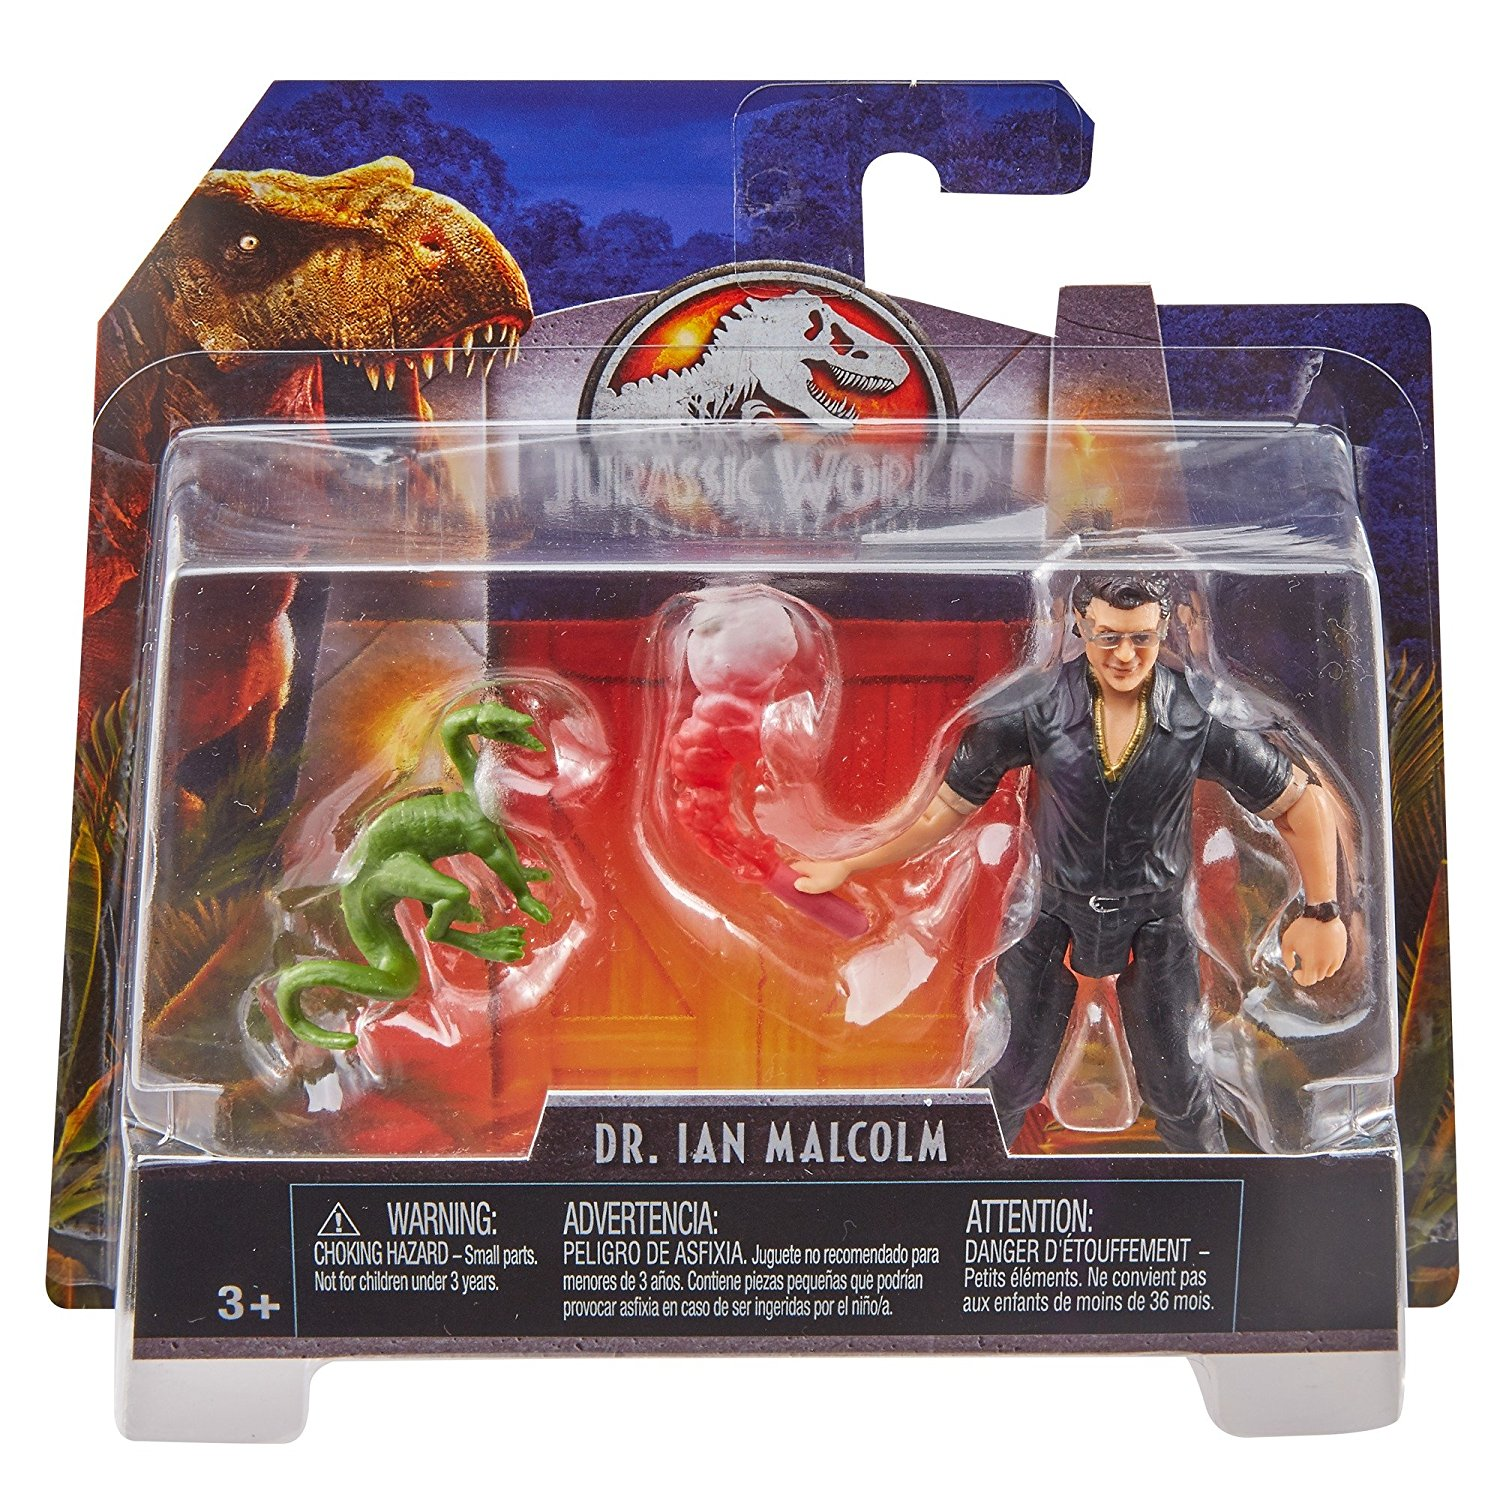 Mattel – New Jurassic World & Jurassic Park Legacy Collection 3.75″ Dr. Ian Malcolm Figures Available Now